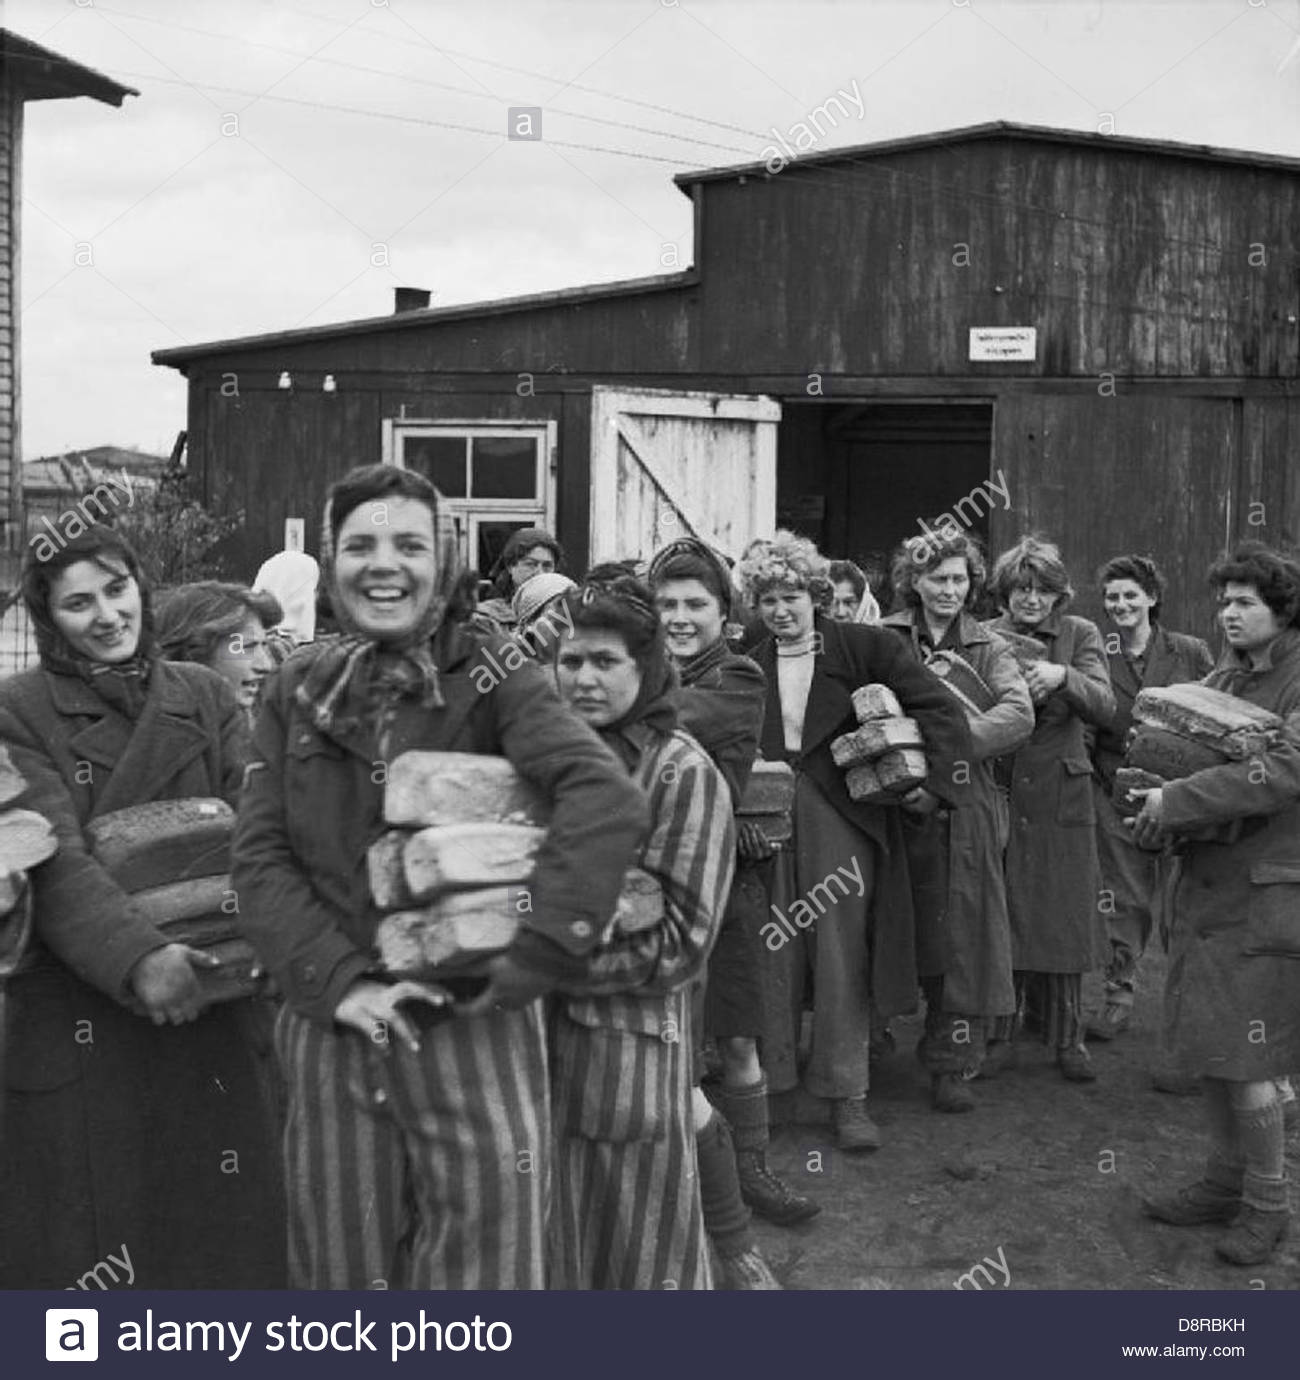 The Liberation of Bergen-belsen Concentration Camp, April 1945 BU4274. - Stock Image